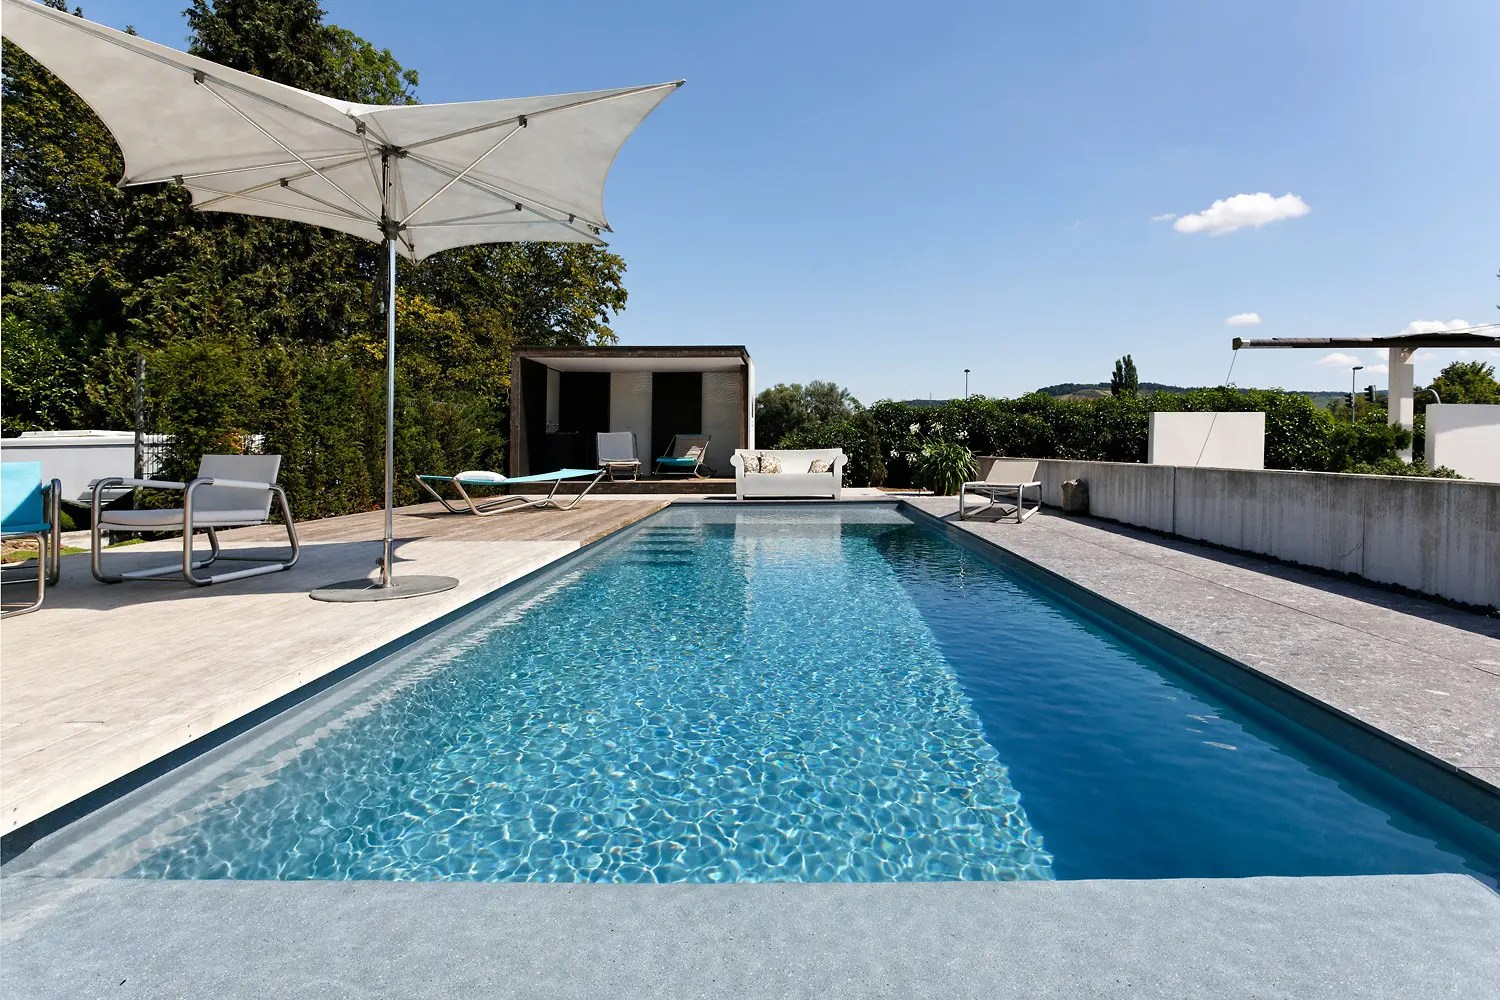 Pool Garten Aufblasbar Pool Garten Contemporary Garten Pool Pools For Home Nice